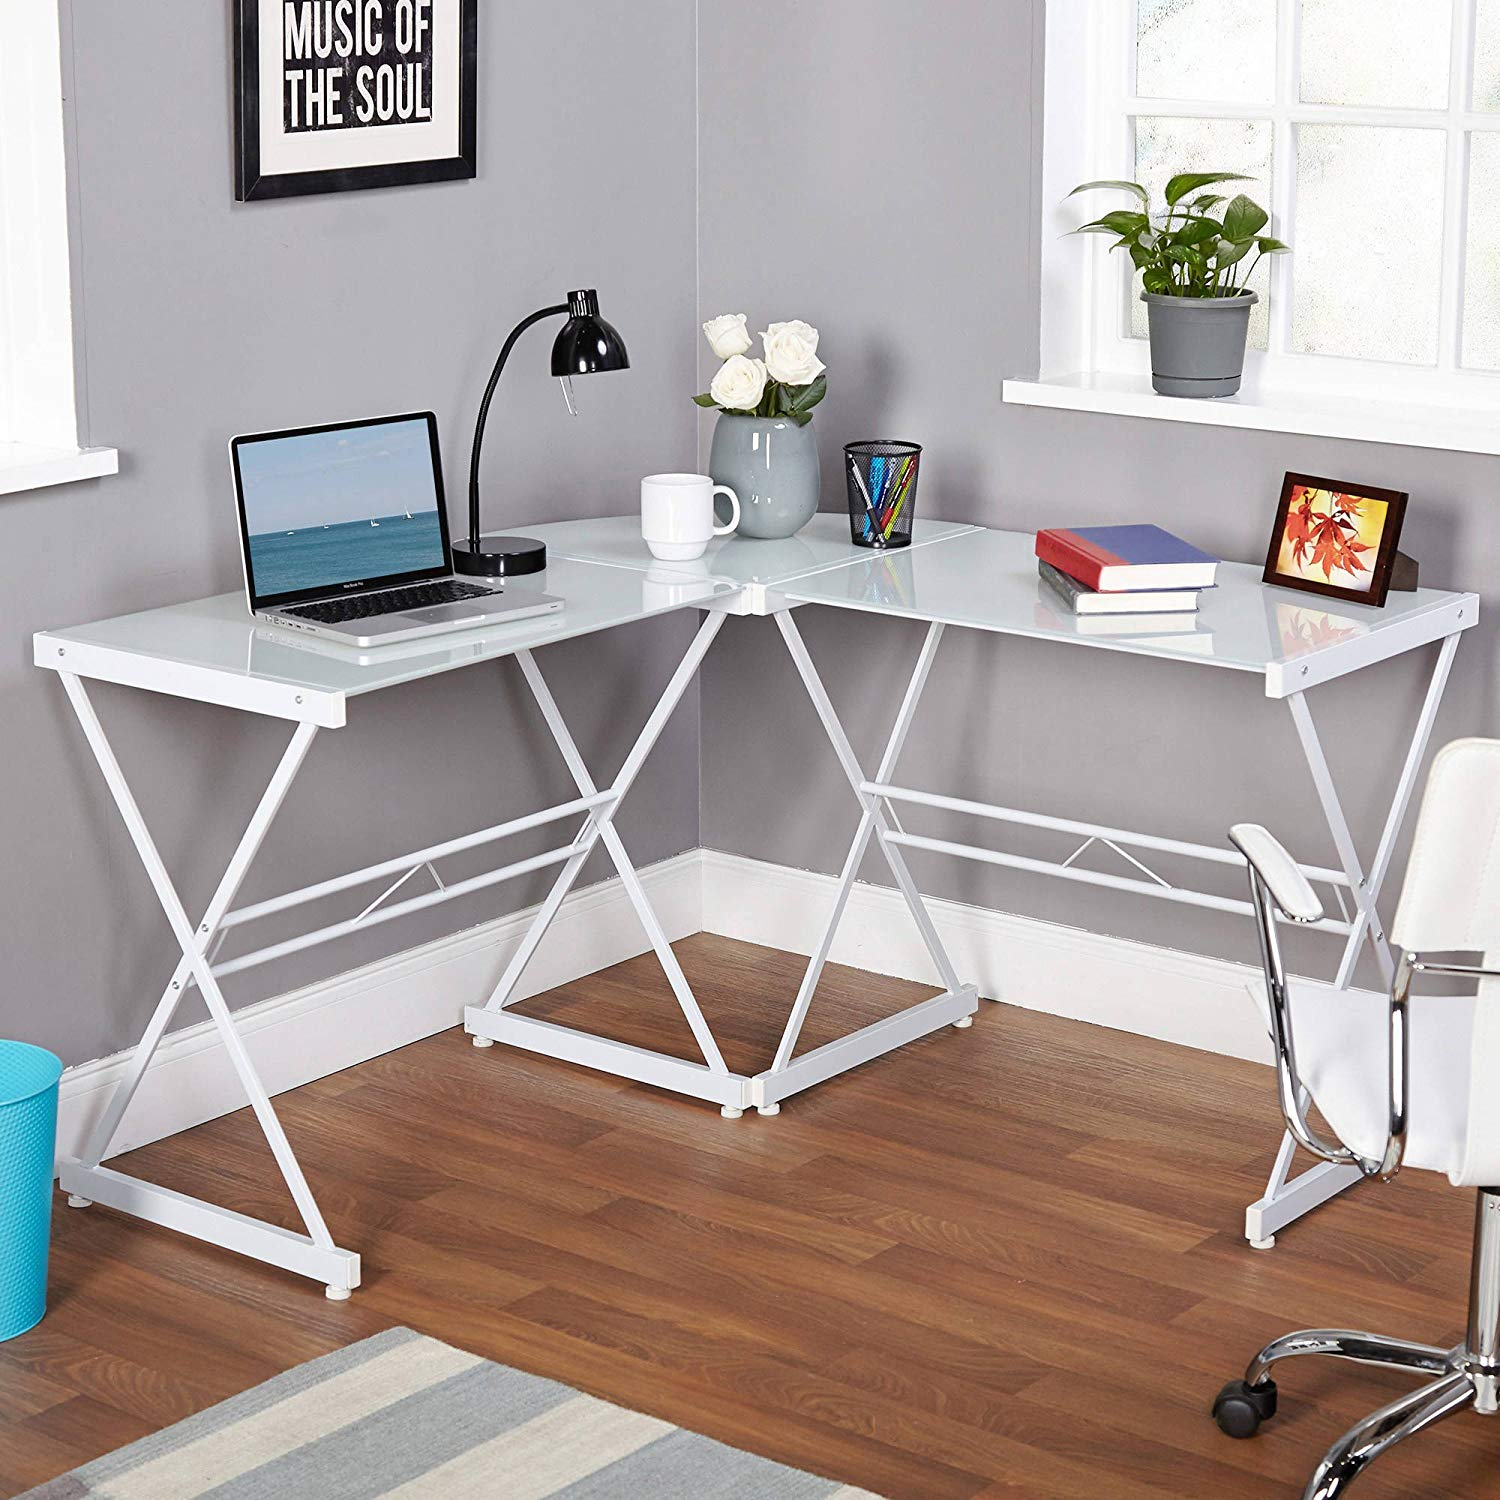 White Metal and Glass L-shaped Computer Desk, Home, Office Furniture, Contemporary, Made with Tempered Glass, Corner Unit, Open Space, Bundle with Our Expert Guide with Tips for Home Arrangement